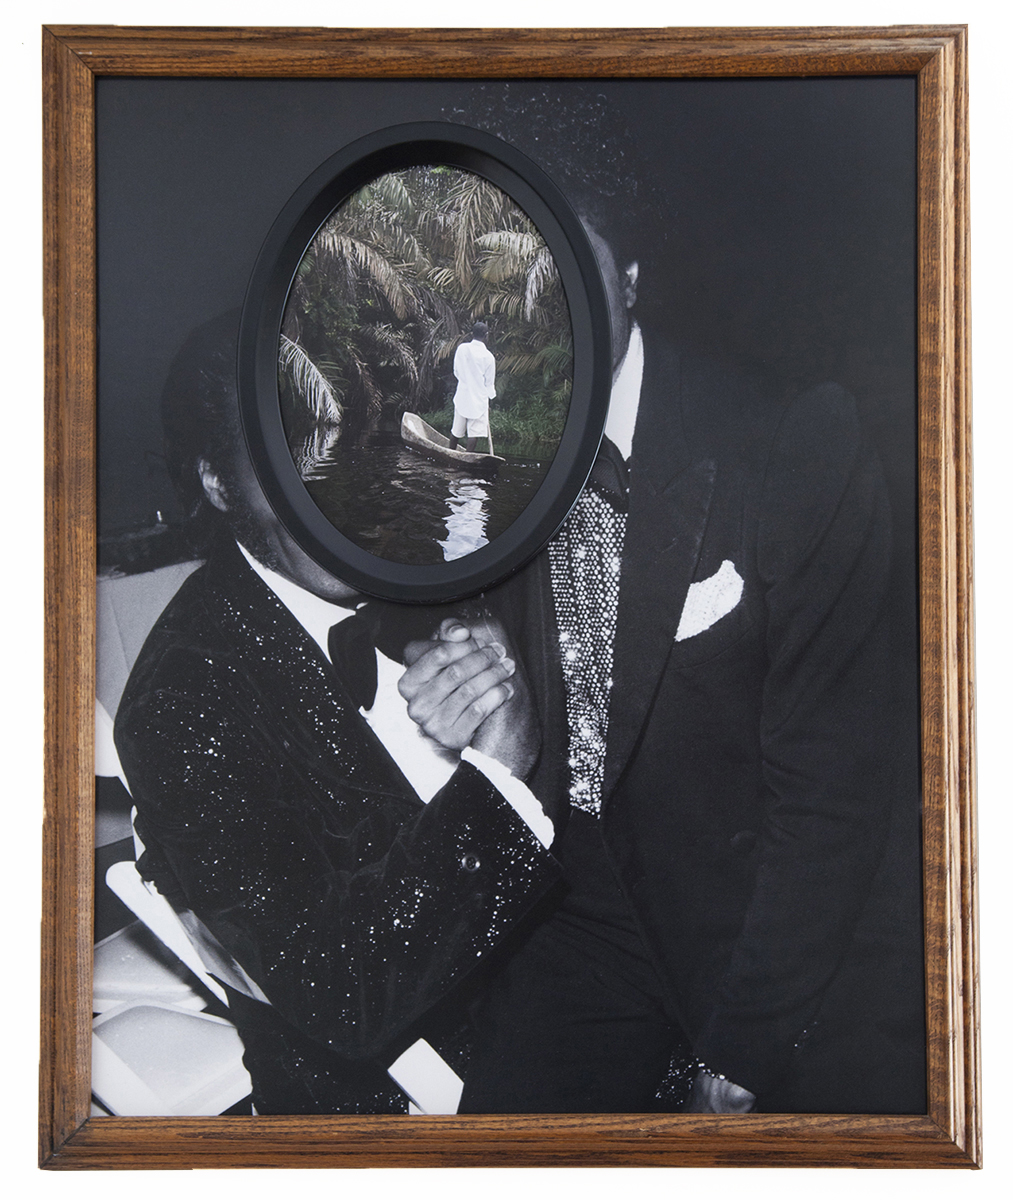 Faustian Darkness , 2014  Archival pigment prints, found antique frames // 28.75 x 26.75 x 2.5 in